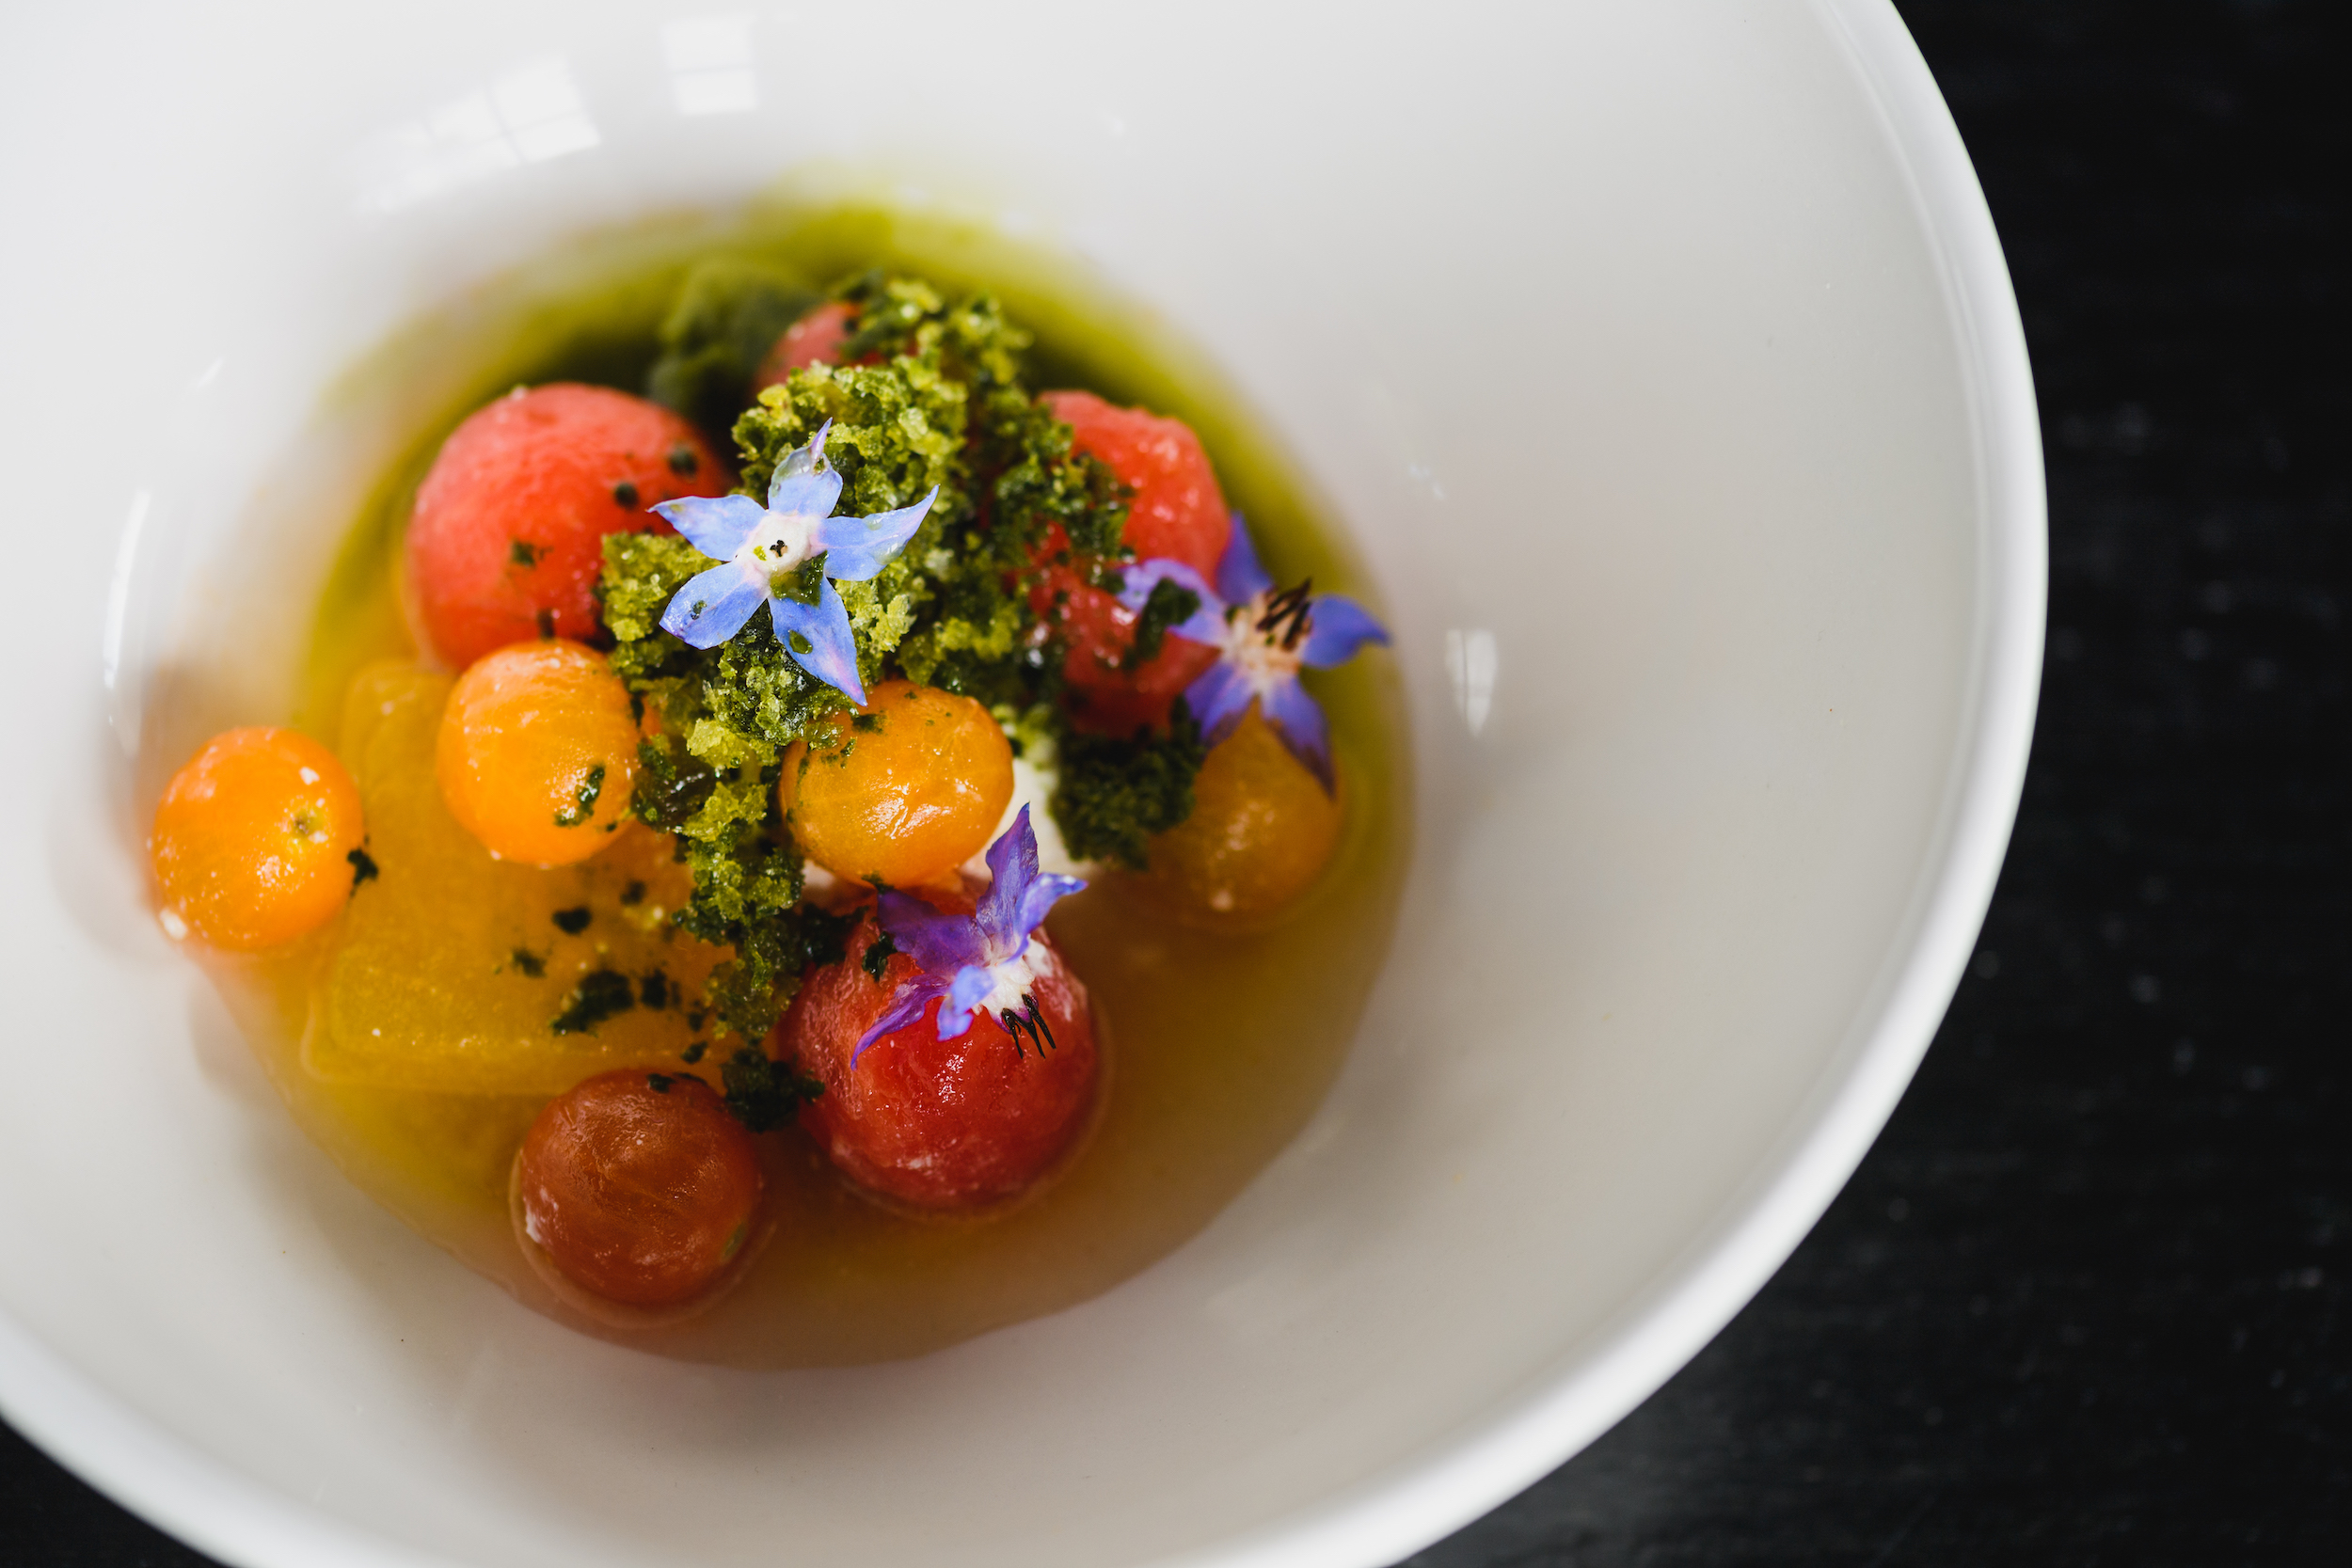 The Garden concase garden tomato, whey compressed watermelon, walnut oil dehydrated watermelon, fresh watermelon, tomato and whey consommé, borage  (1).jpg